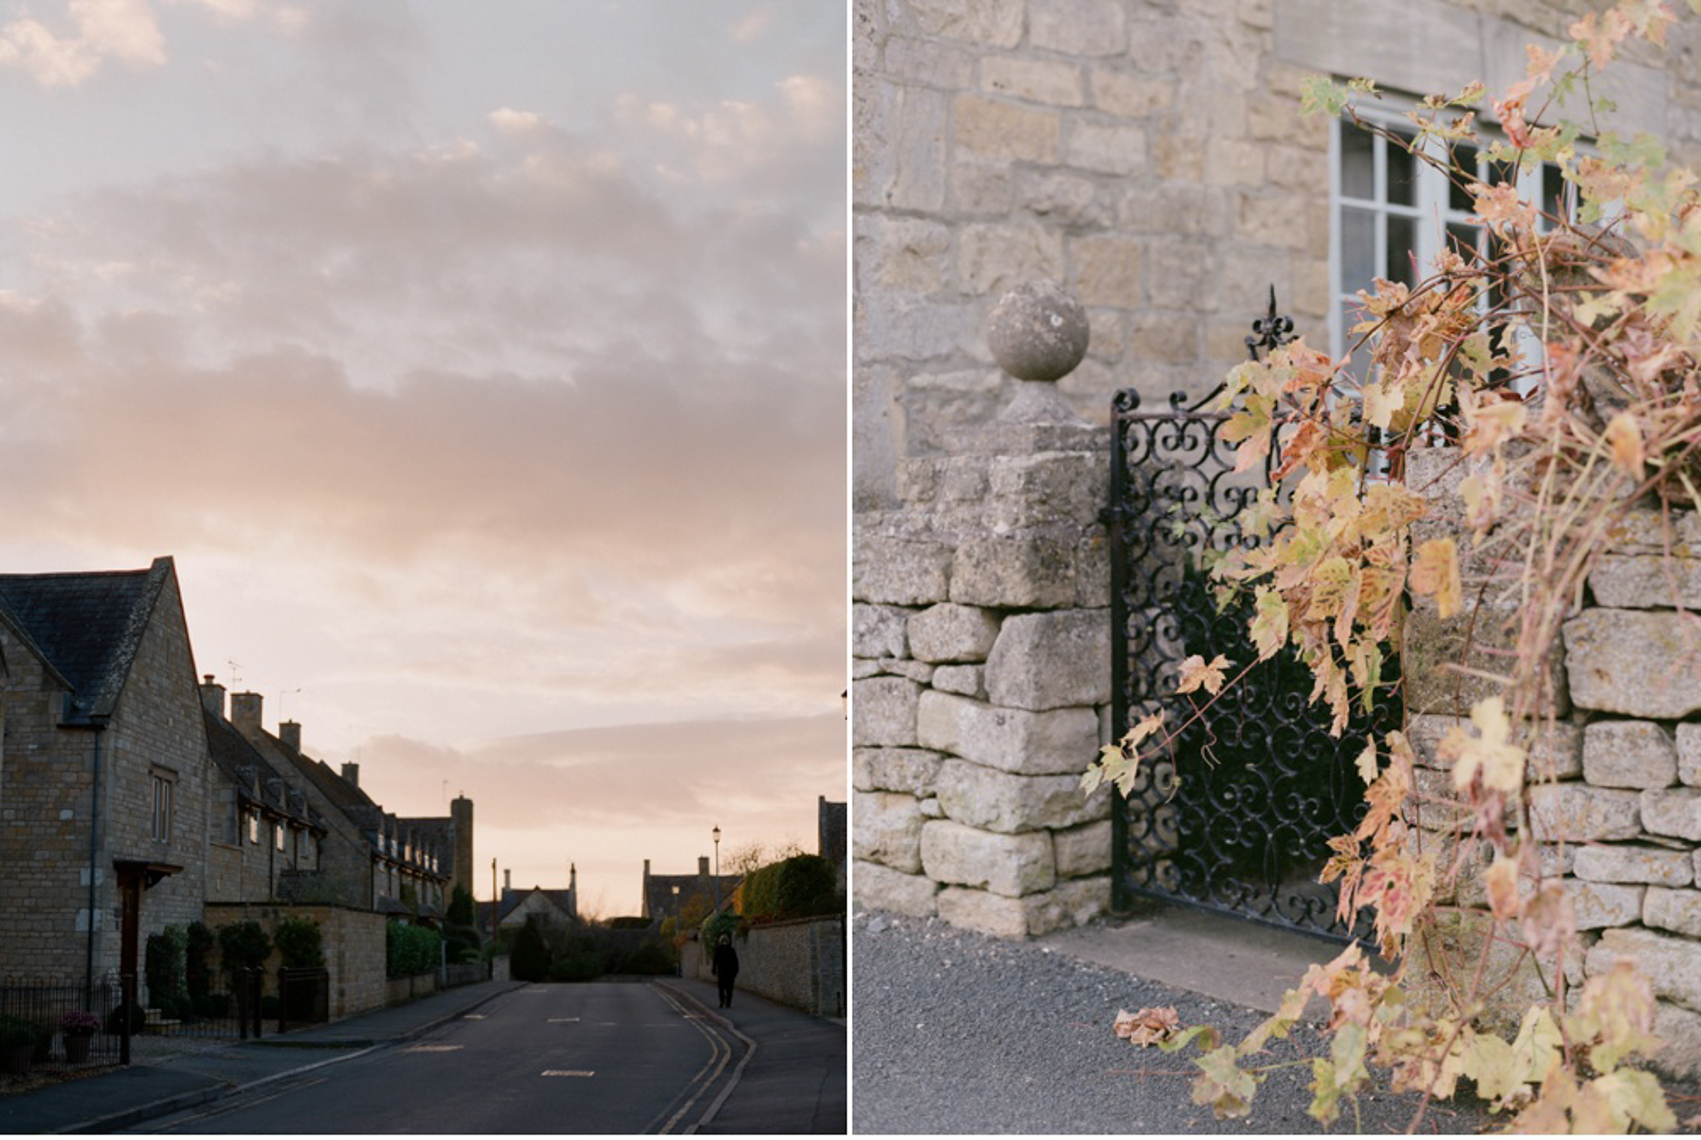 Cotswolds_WeddingPhotographer_UK©MadalinaSheldon_6.jpg